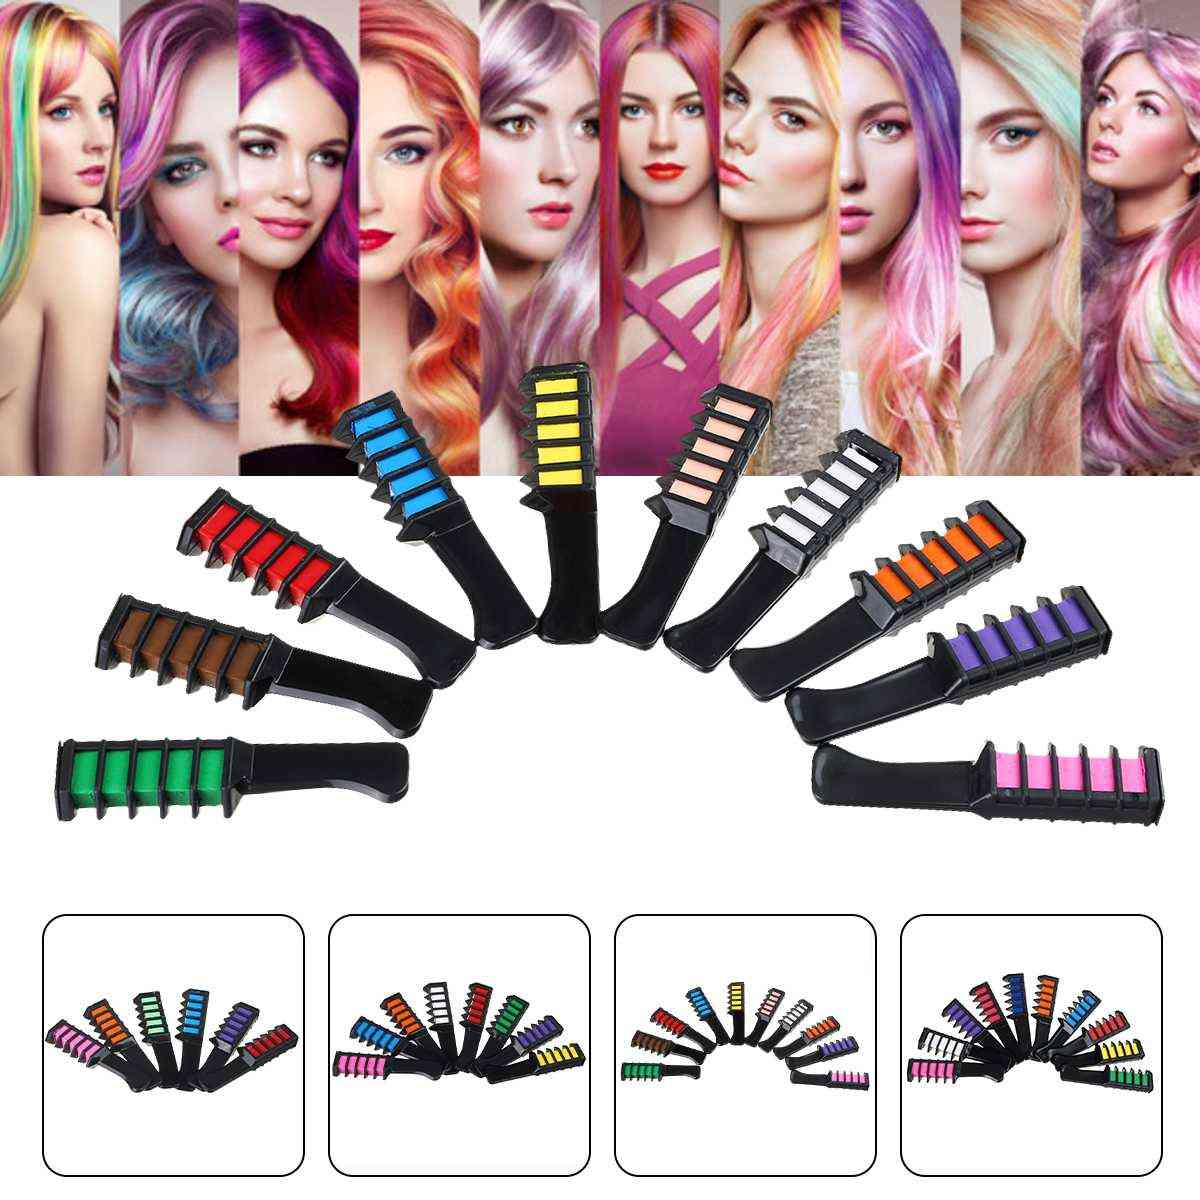 Temporary Washable Hair Makeup Set Comb